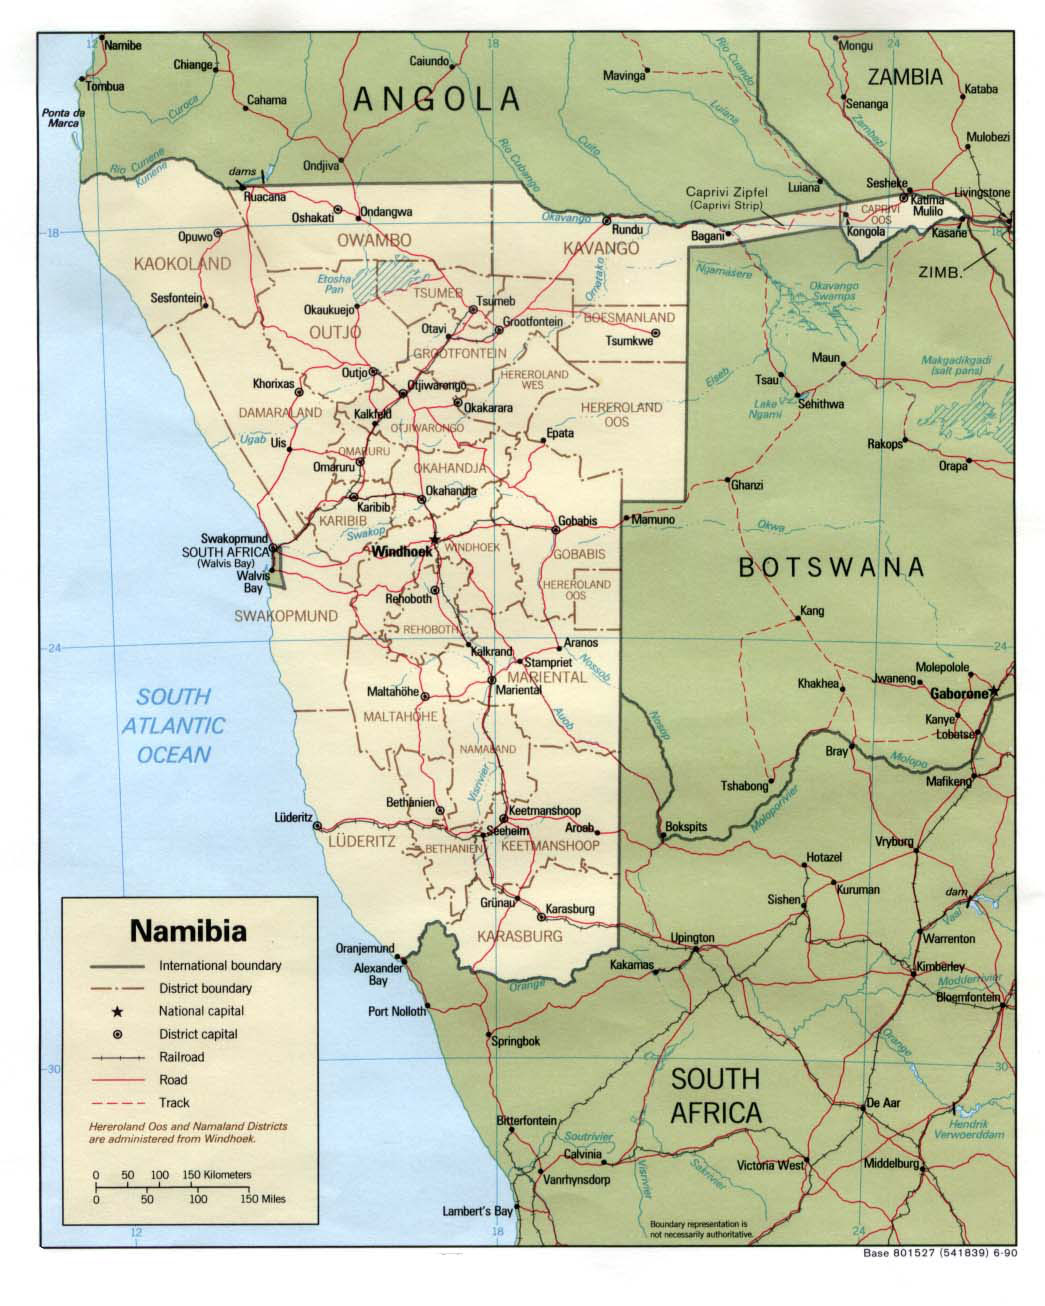 Detailed political and administrative map of Namibia Namibia